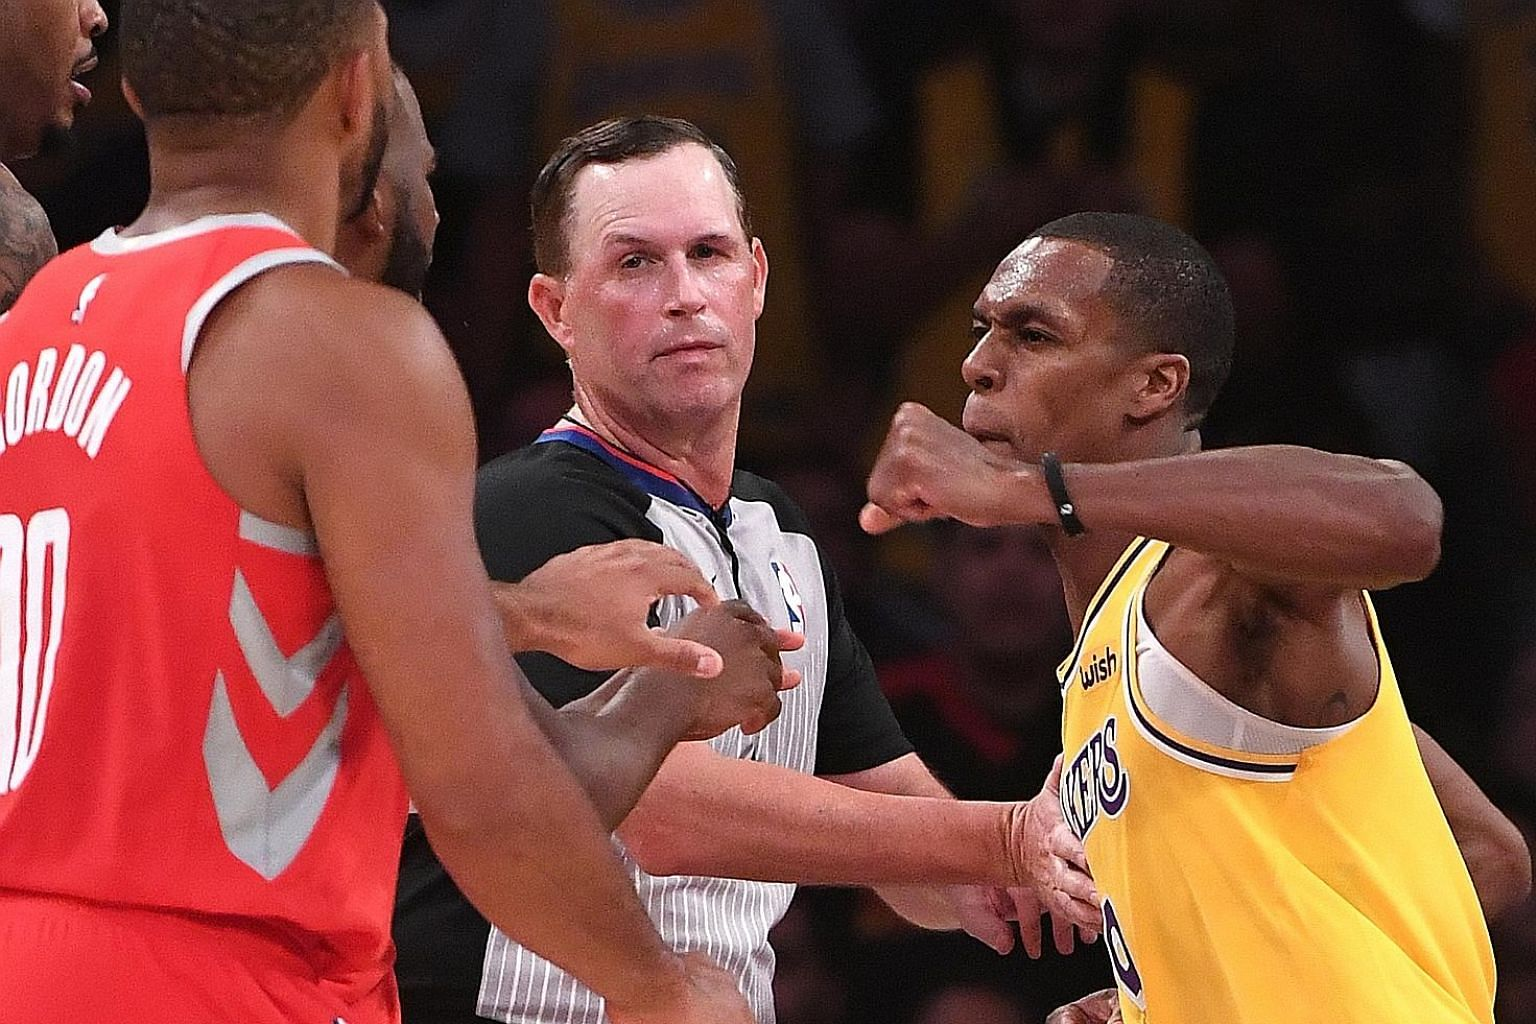 Los Angeles Lakers guard Rajon Rondo (No. 9) throws a punch at Houston Rockets guard Chris Paul during the fight in the fourth quarter at Staples Centre.